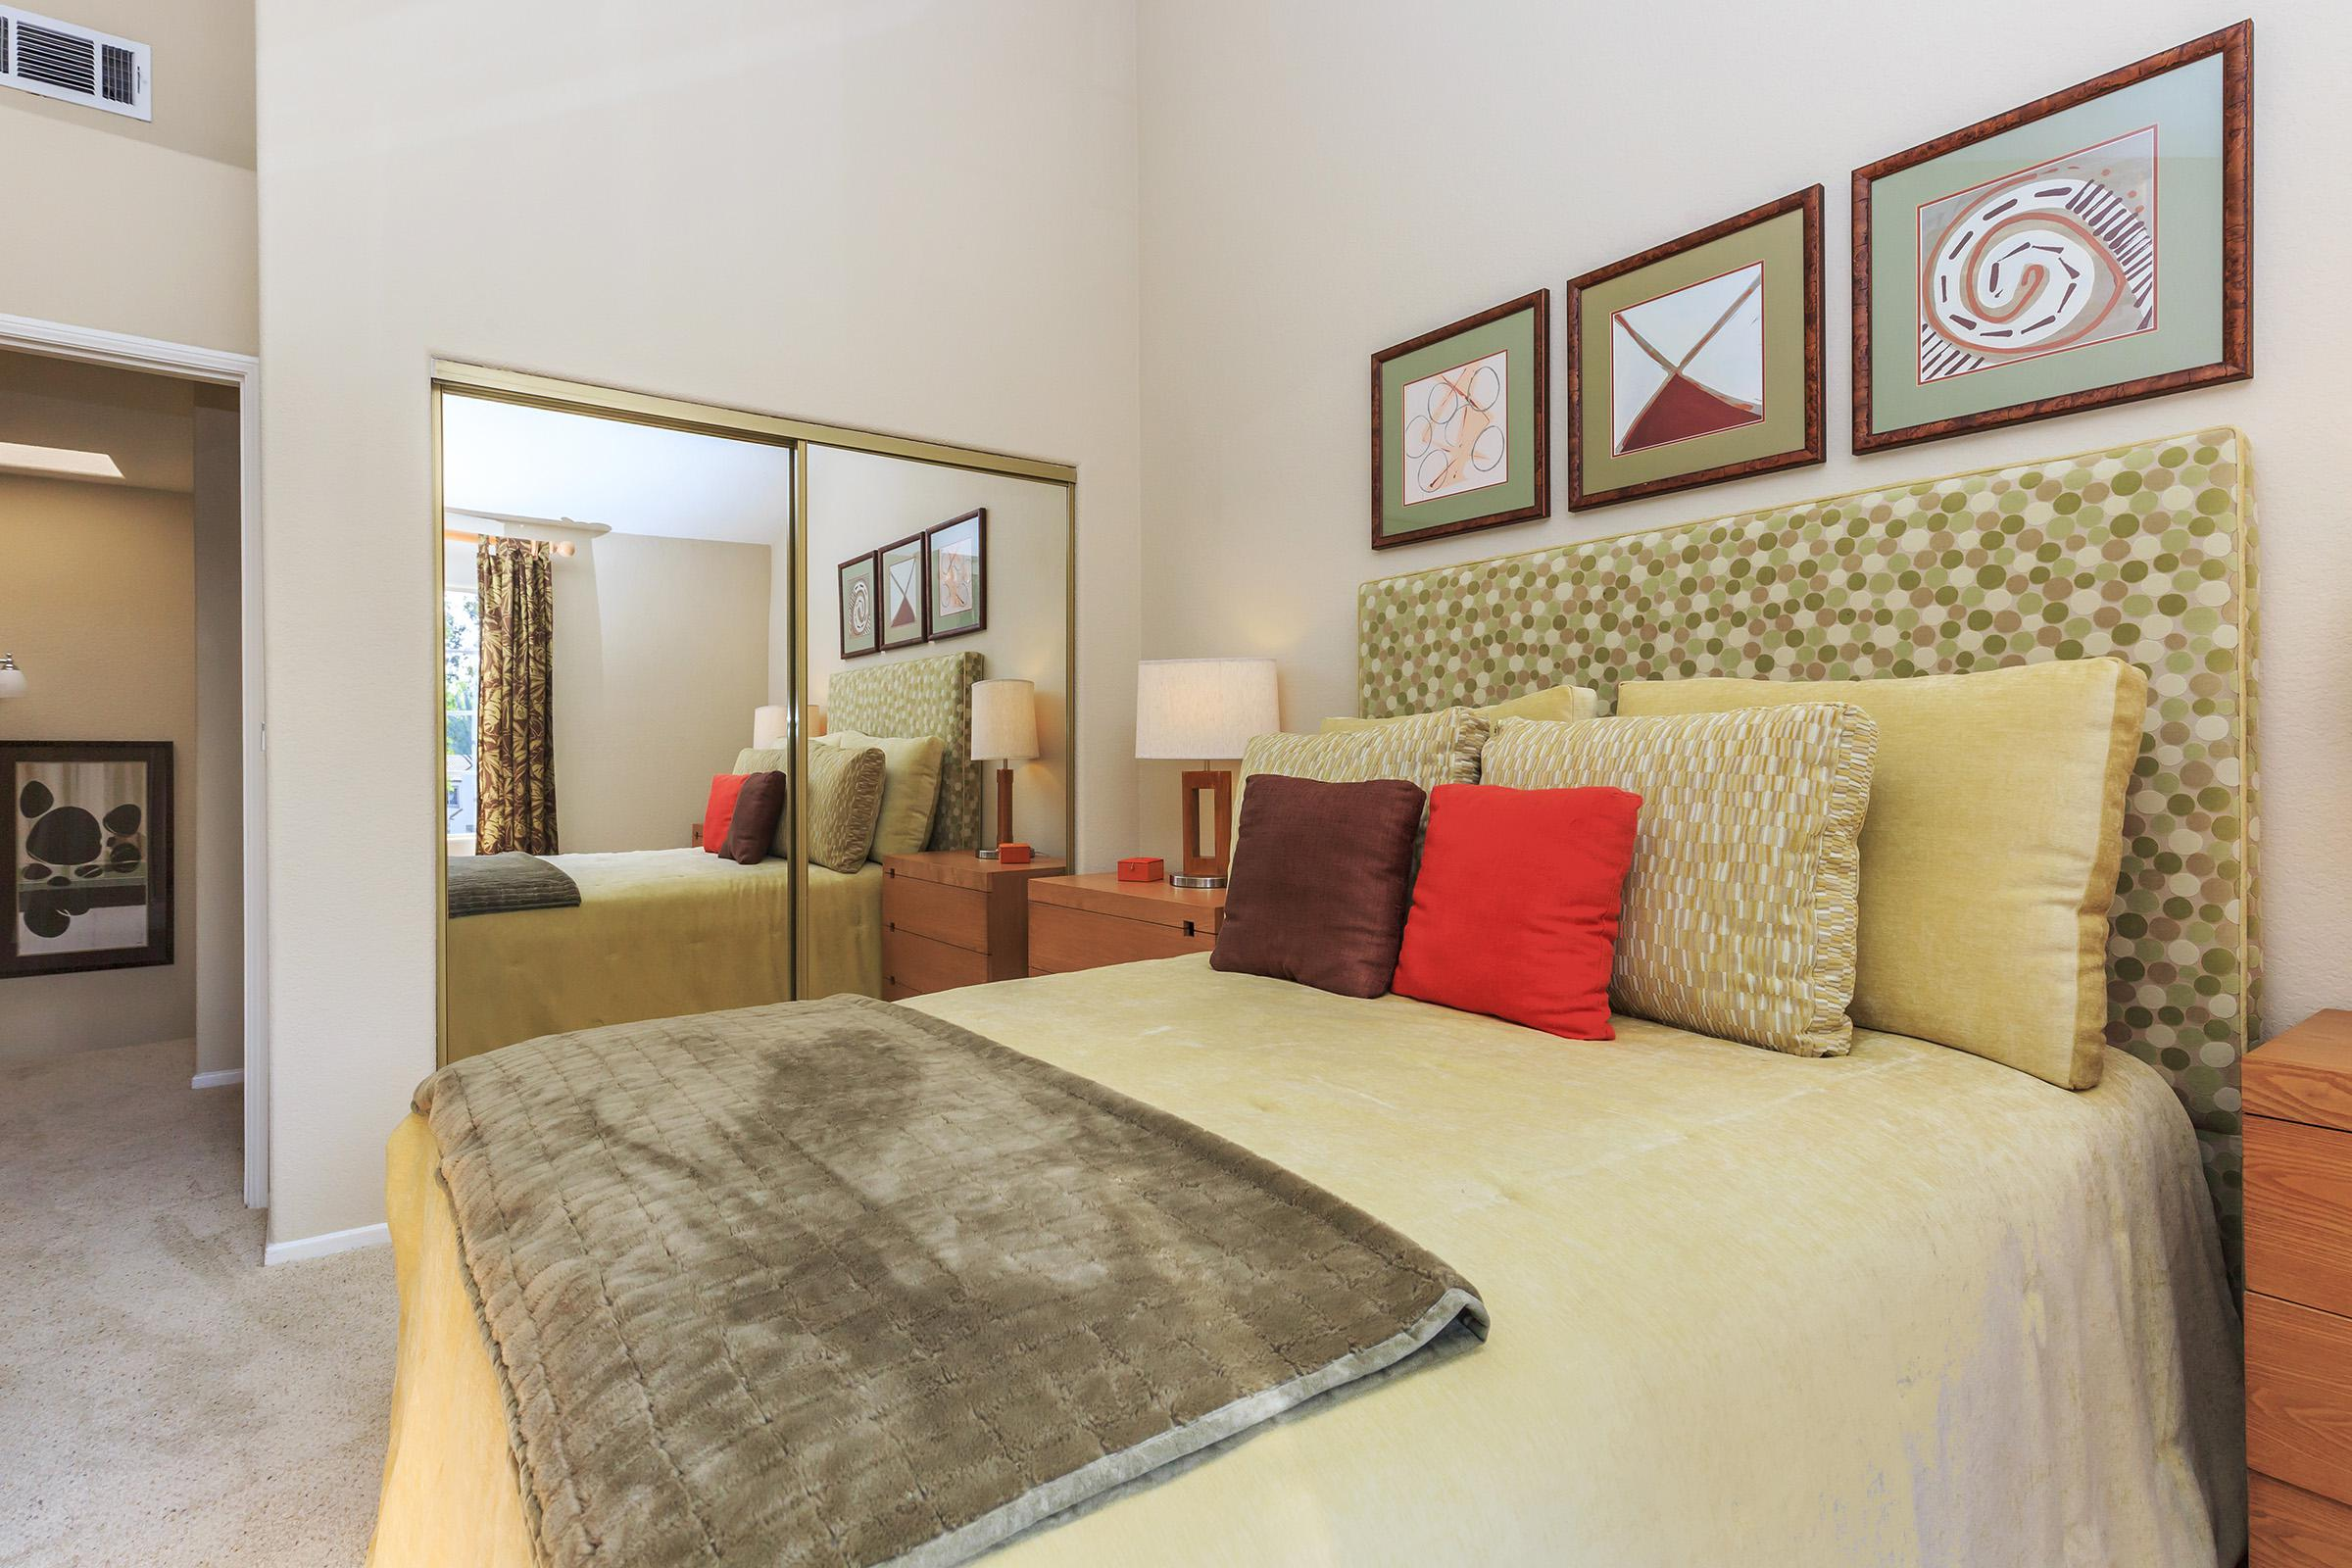 a double bed in a room